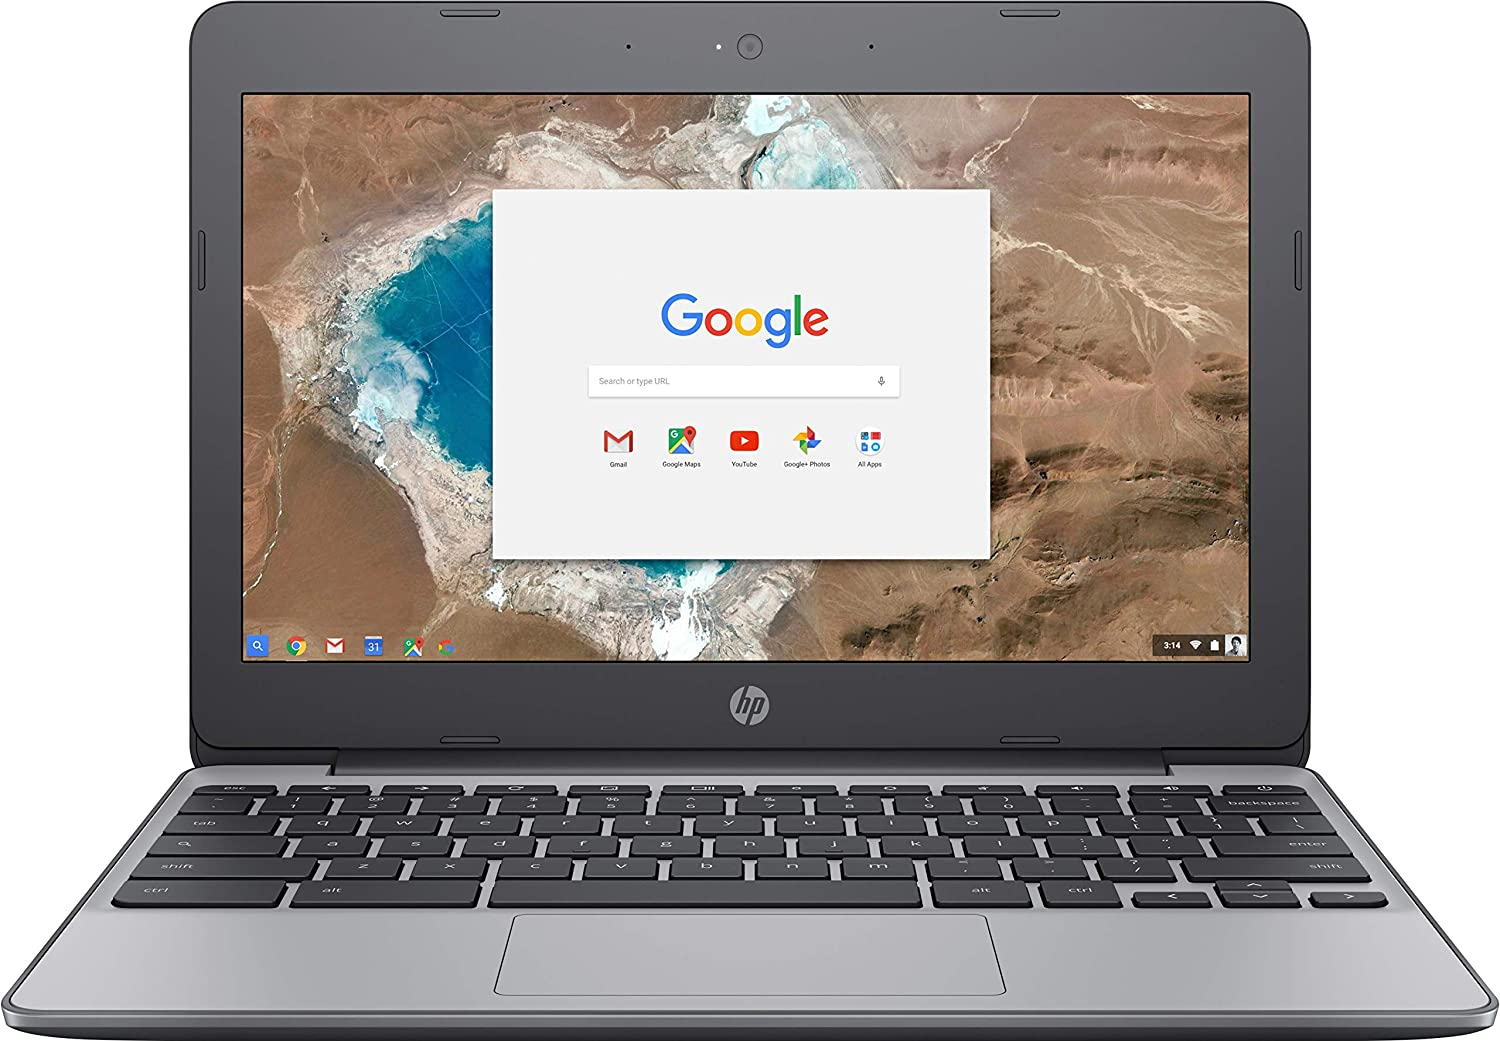 HP 11.6-Inch Chromebook, HD Display (1366 x 768), Intel Dual-Core Celeron N3060 1.6GHz, 4GB RAM, 16GB eMMC, HD Webcam, Bluetooth, HDMI, Chrome OS